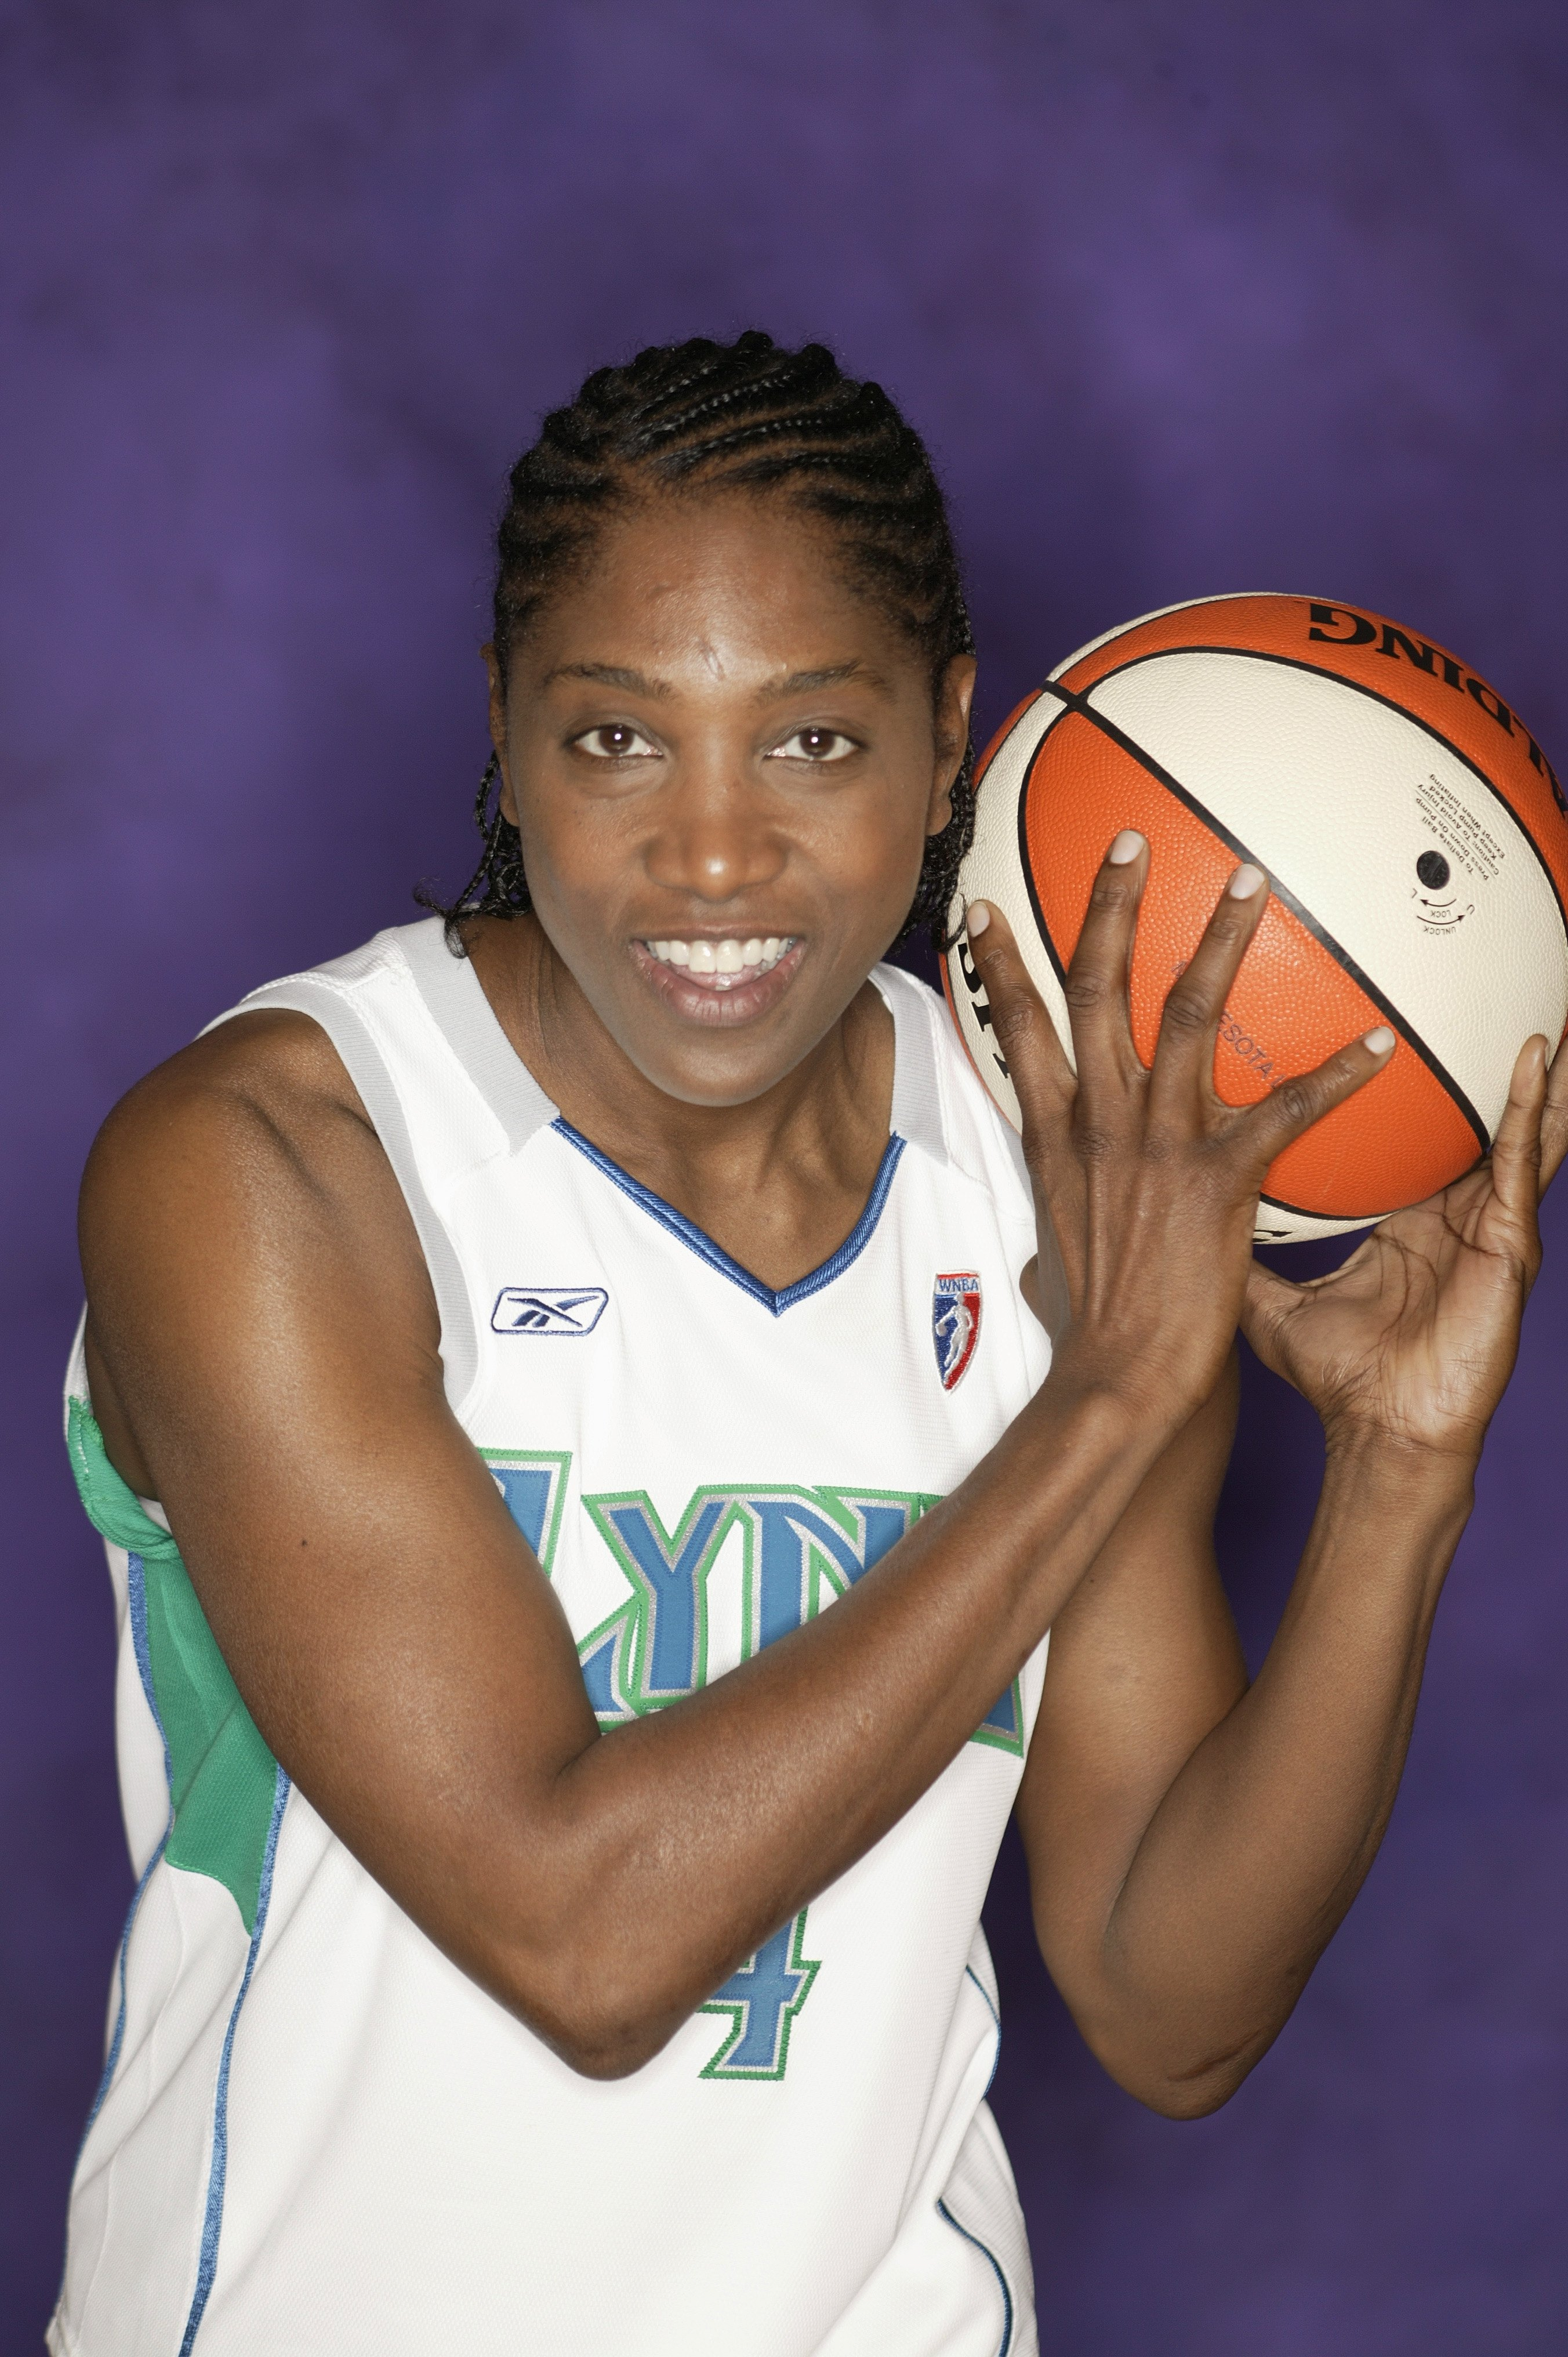 Teresa Edwards #4 of the Minnesota Lynx poses for a portrait during the 2004 WNBA Media Day at Target Center on April 27, 2004 | Photo: Getty Images